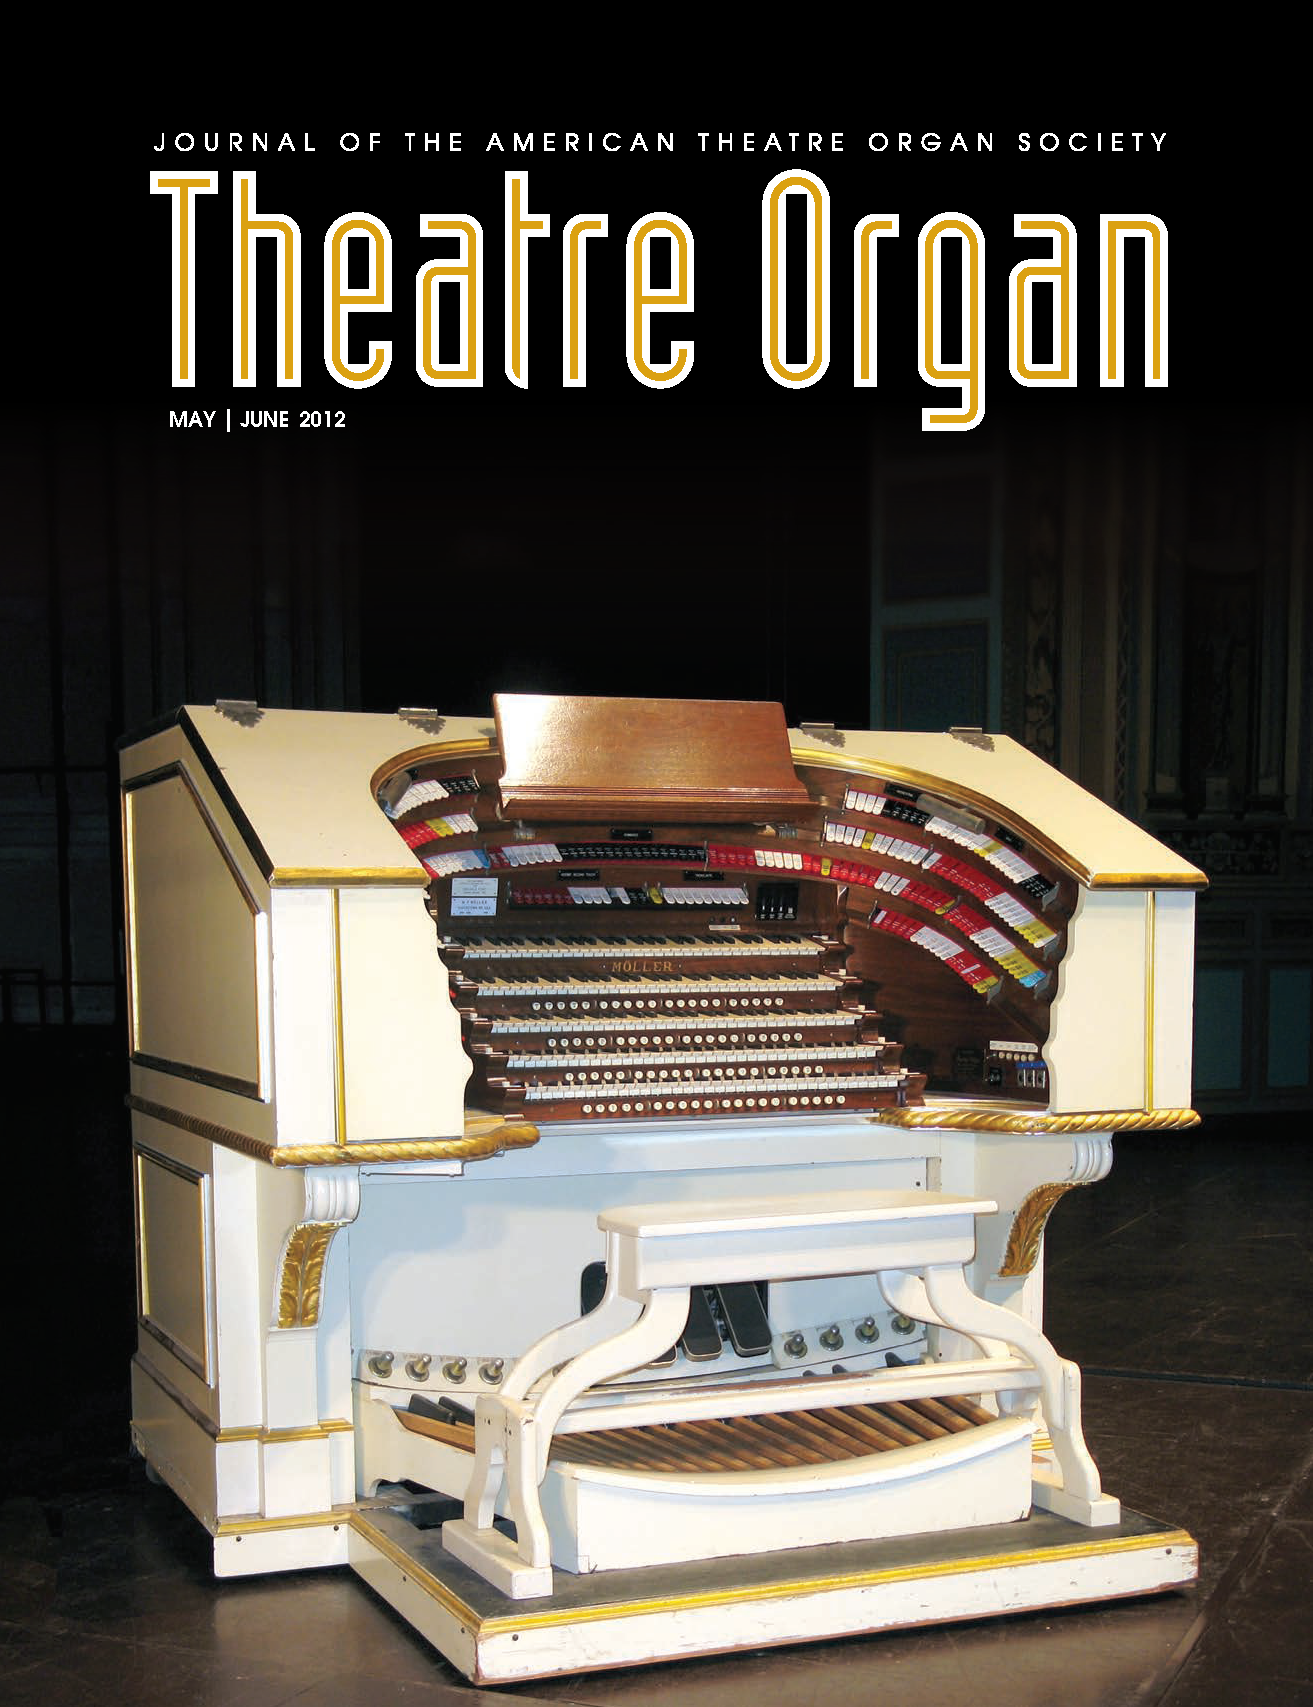 Theatre Organ, May - June 2012, Volume 54, Number 3